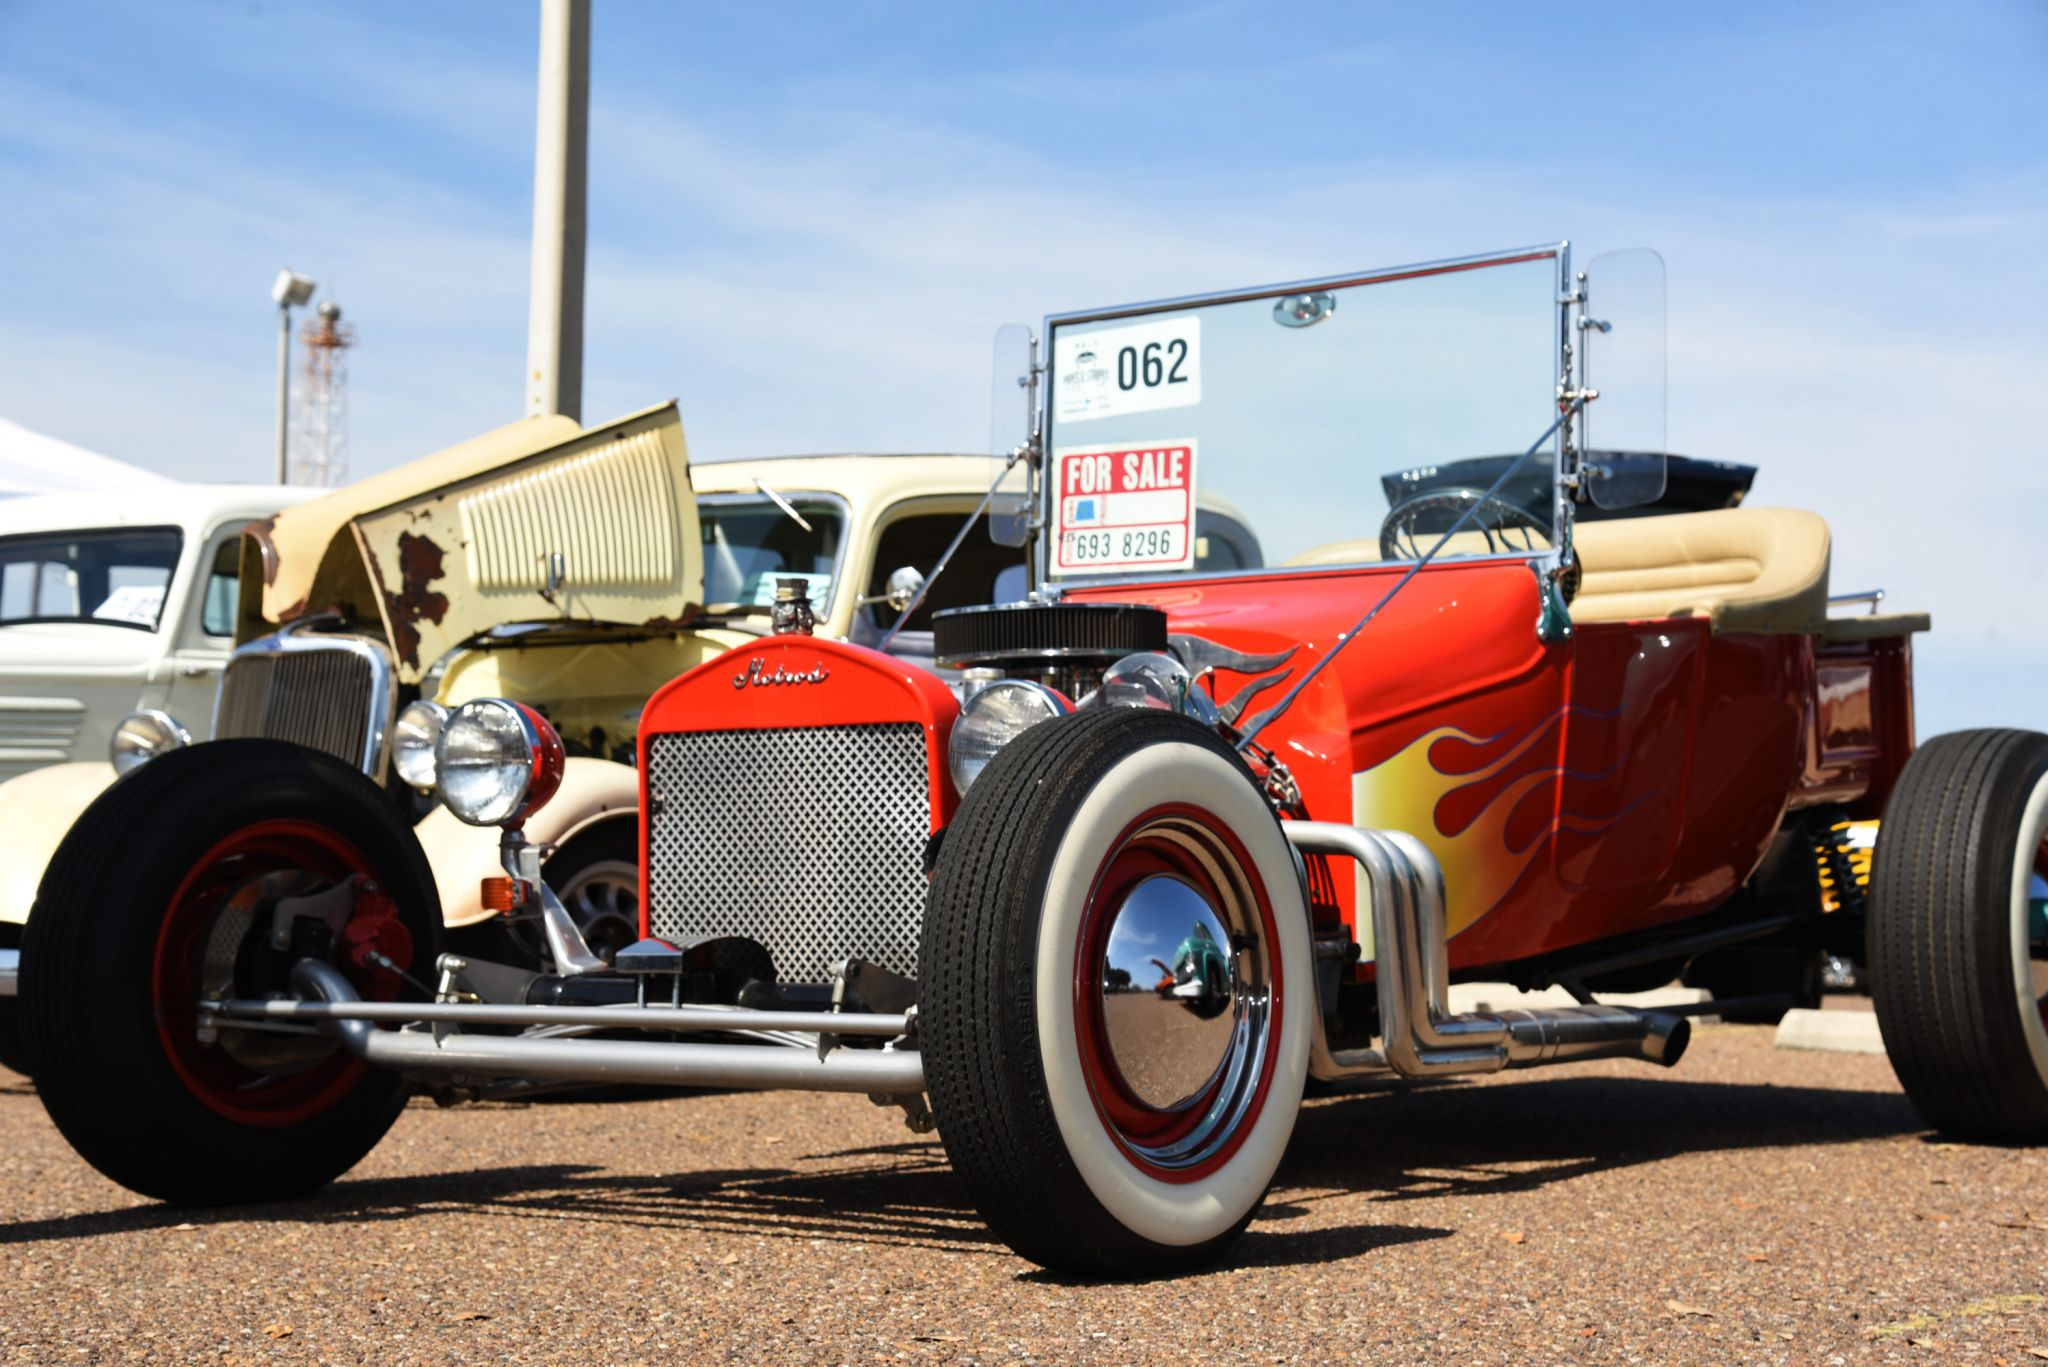 Winners annouced for annual Pipes & Stripes car show